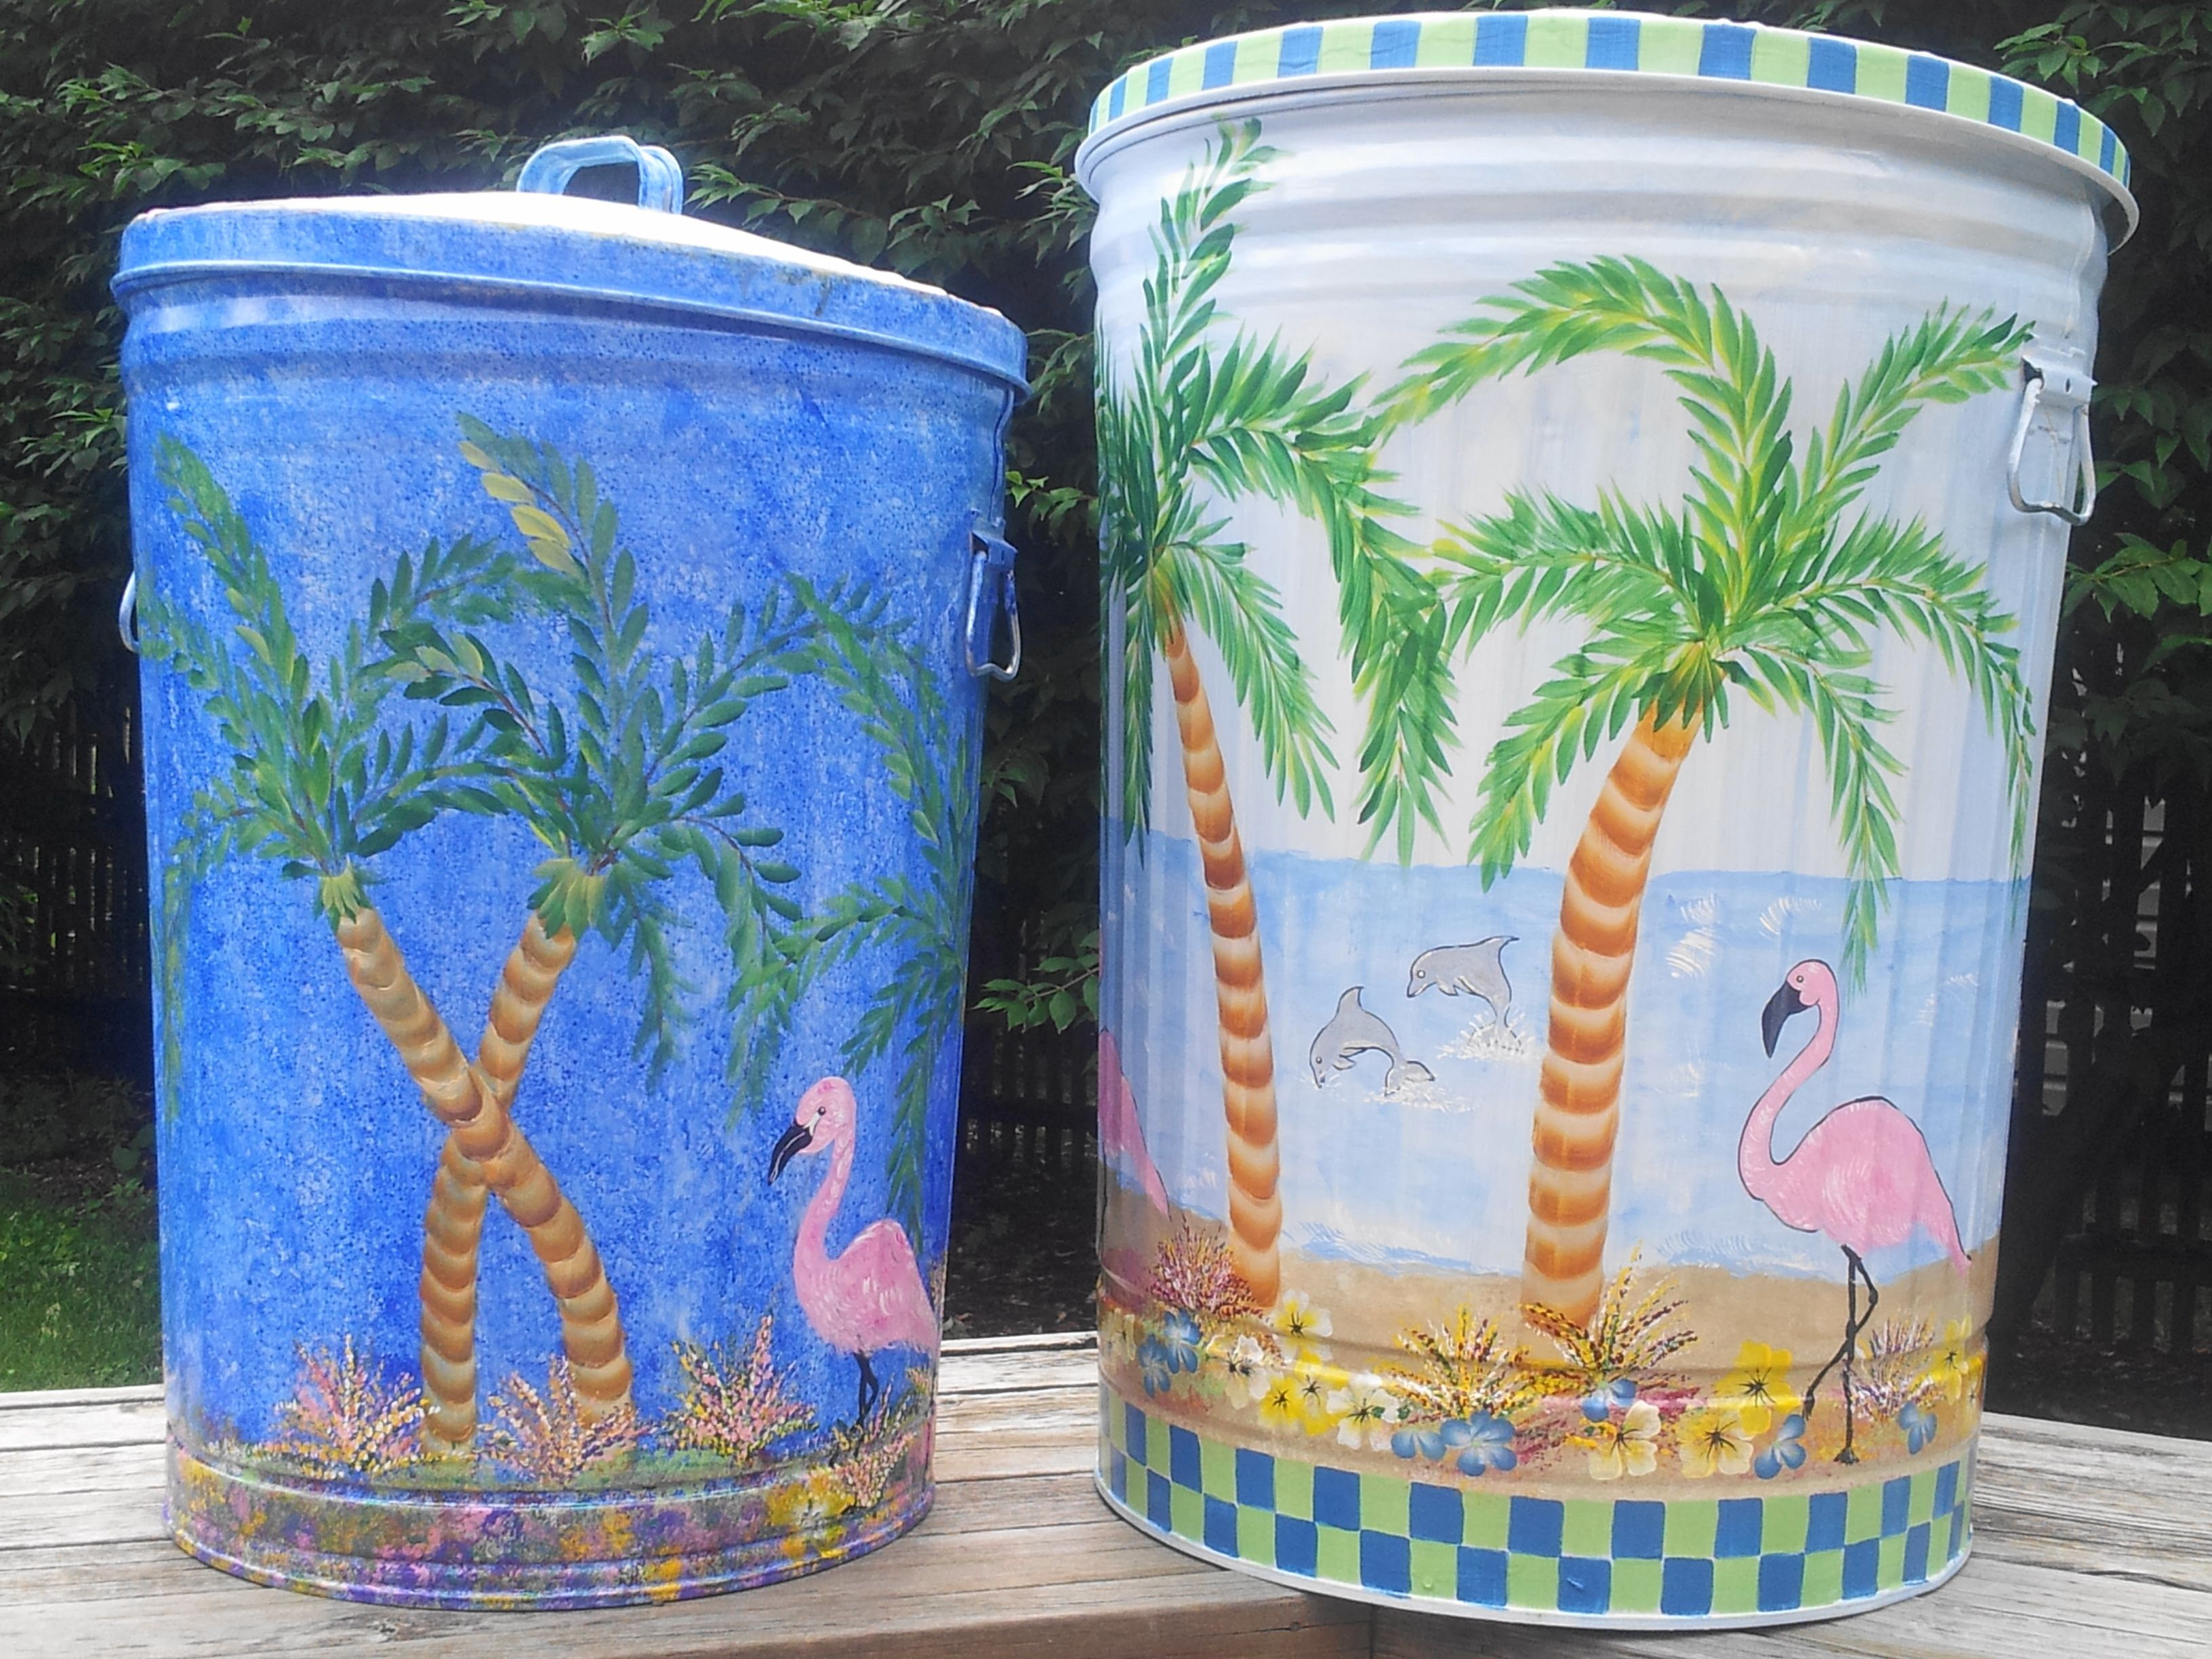 30 Gallon & 20 Gallon Hand Painted Trash Cans Krystasinthepointecom